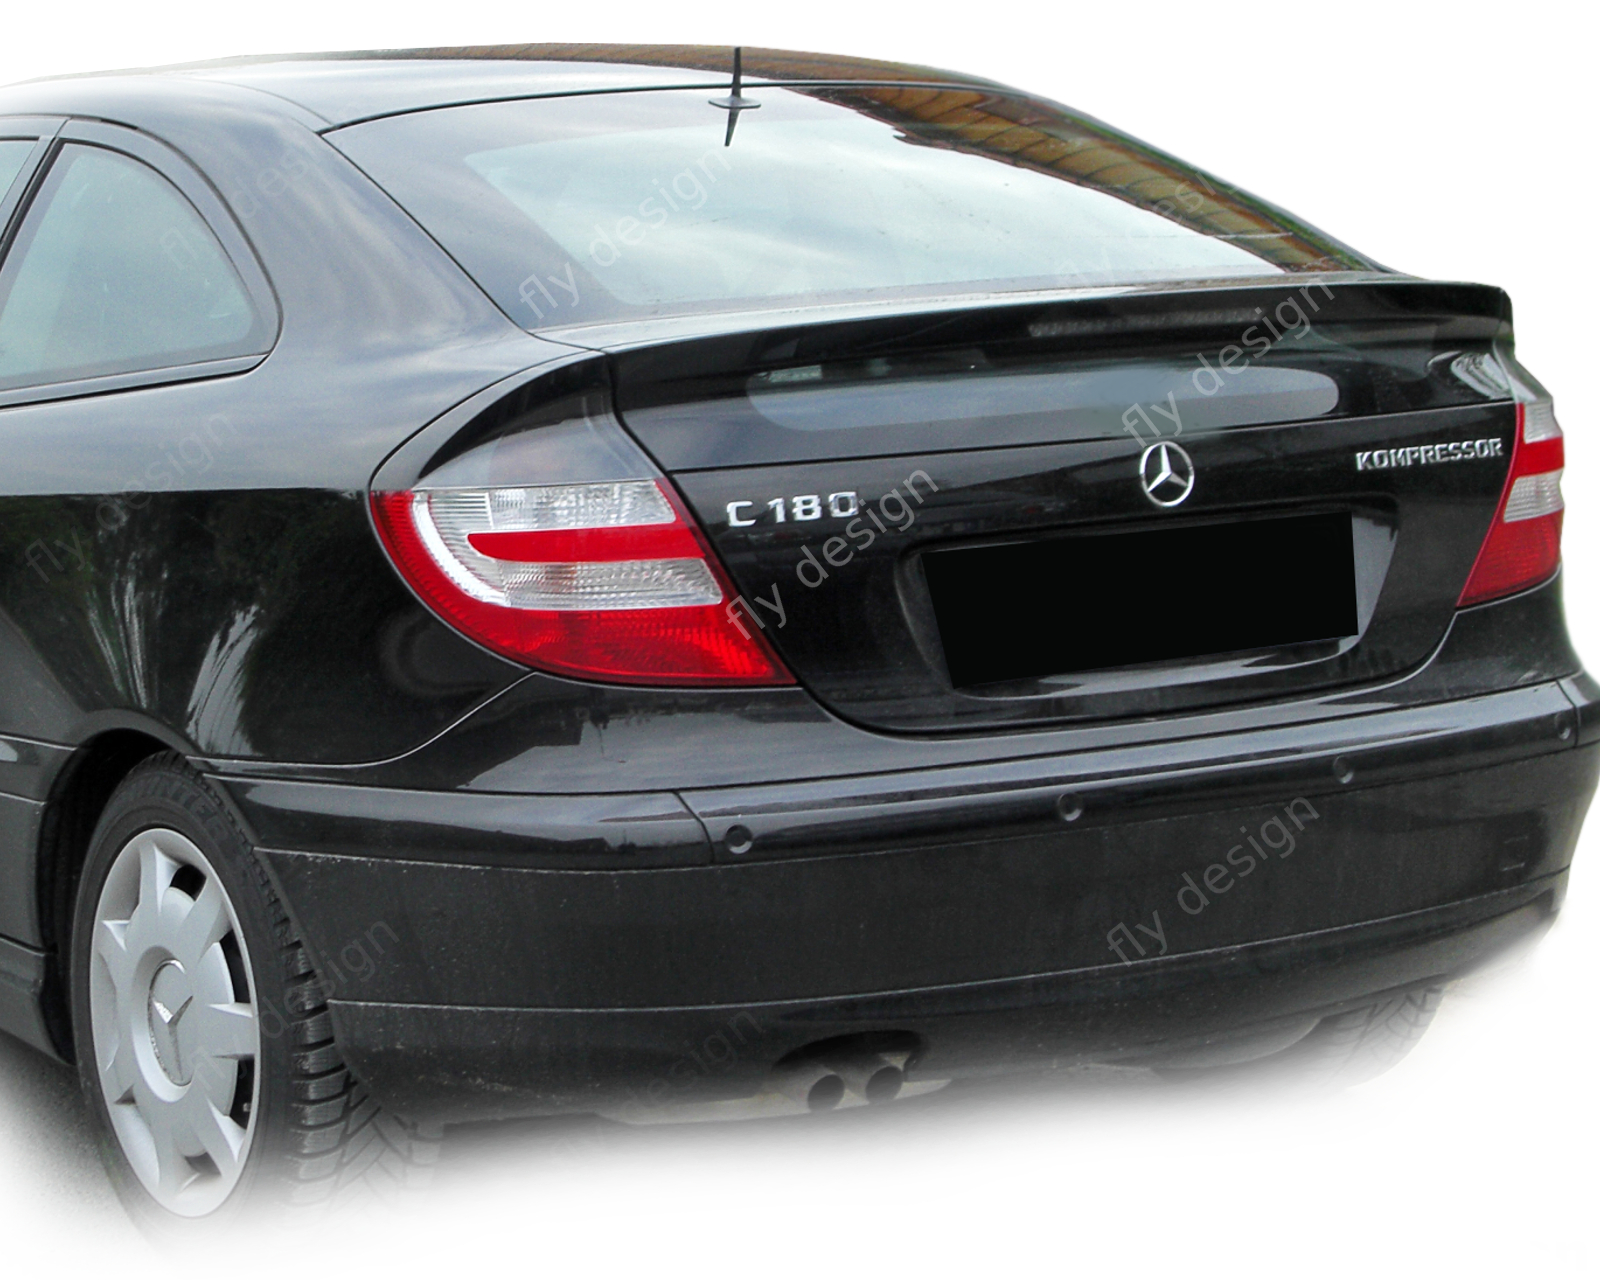 mercedes c klasse cl 203 w203 sport coupe spoiler kompressor heckspoiler 2000 08 ebay. Black Bedroom Furniture Sets. Home Design Ideas